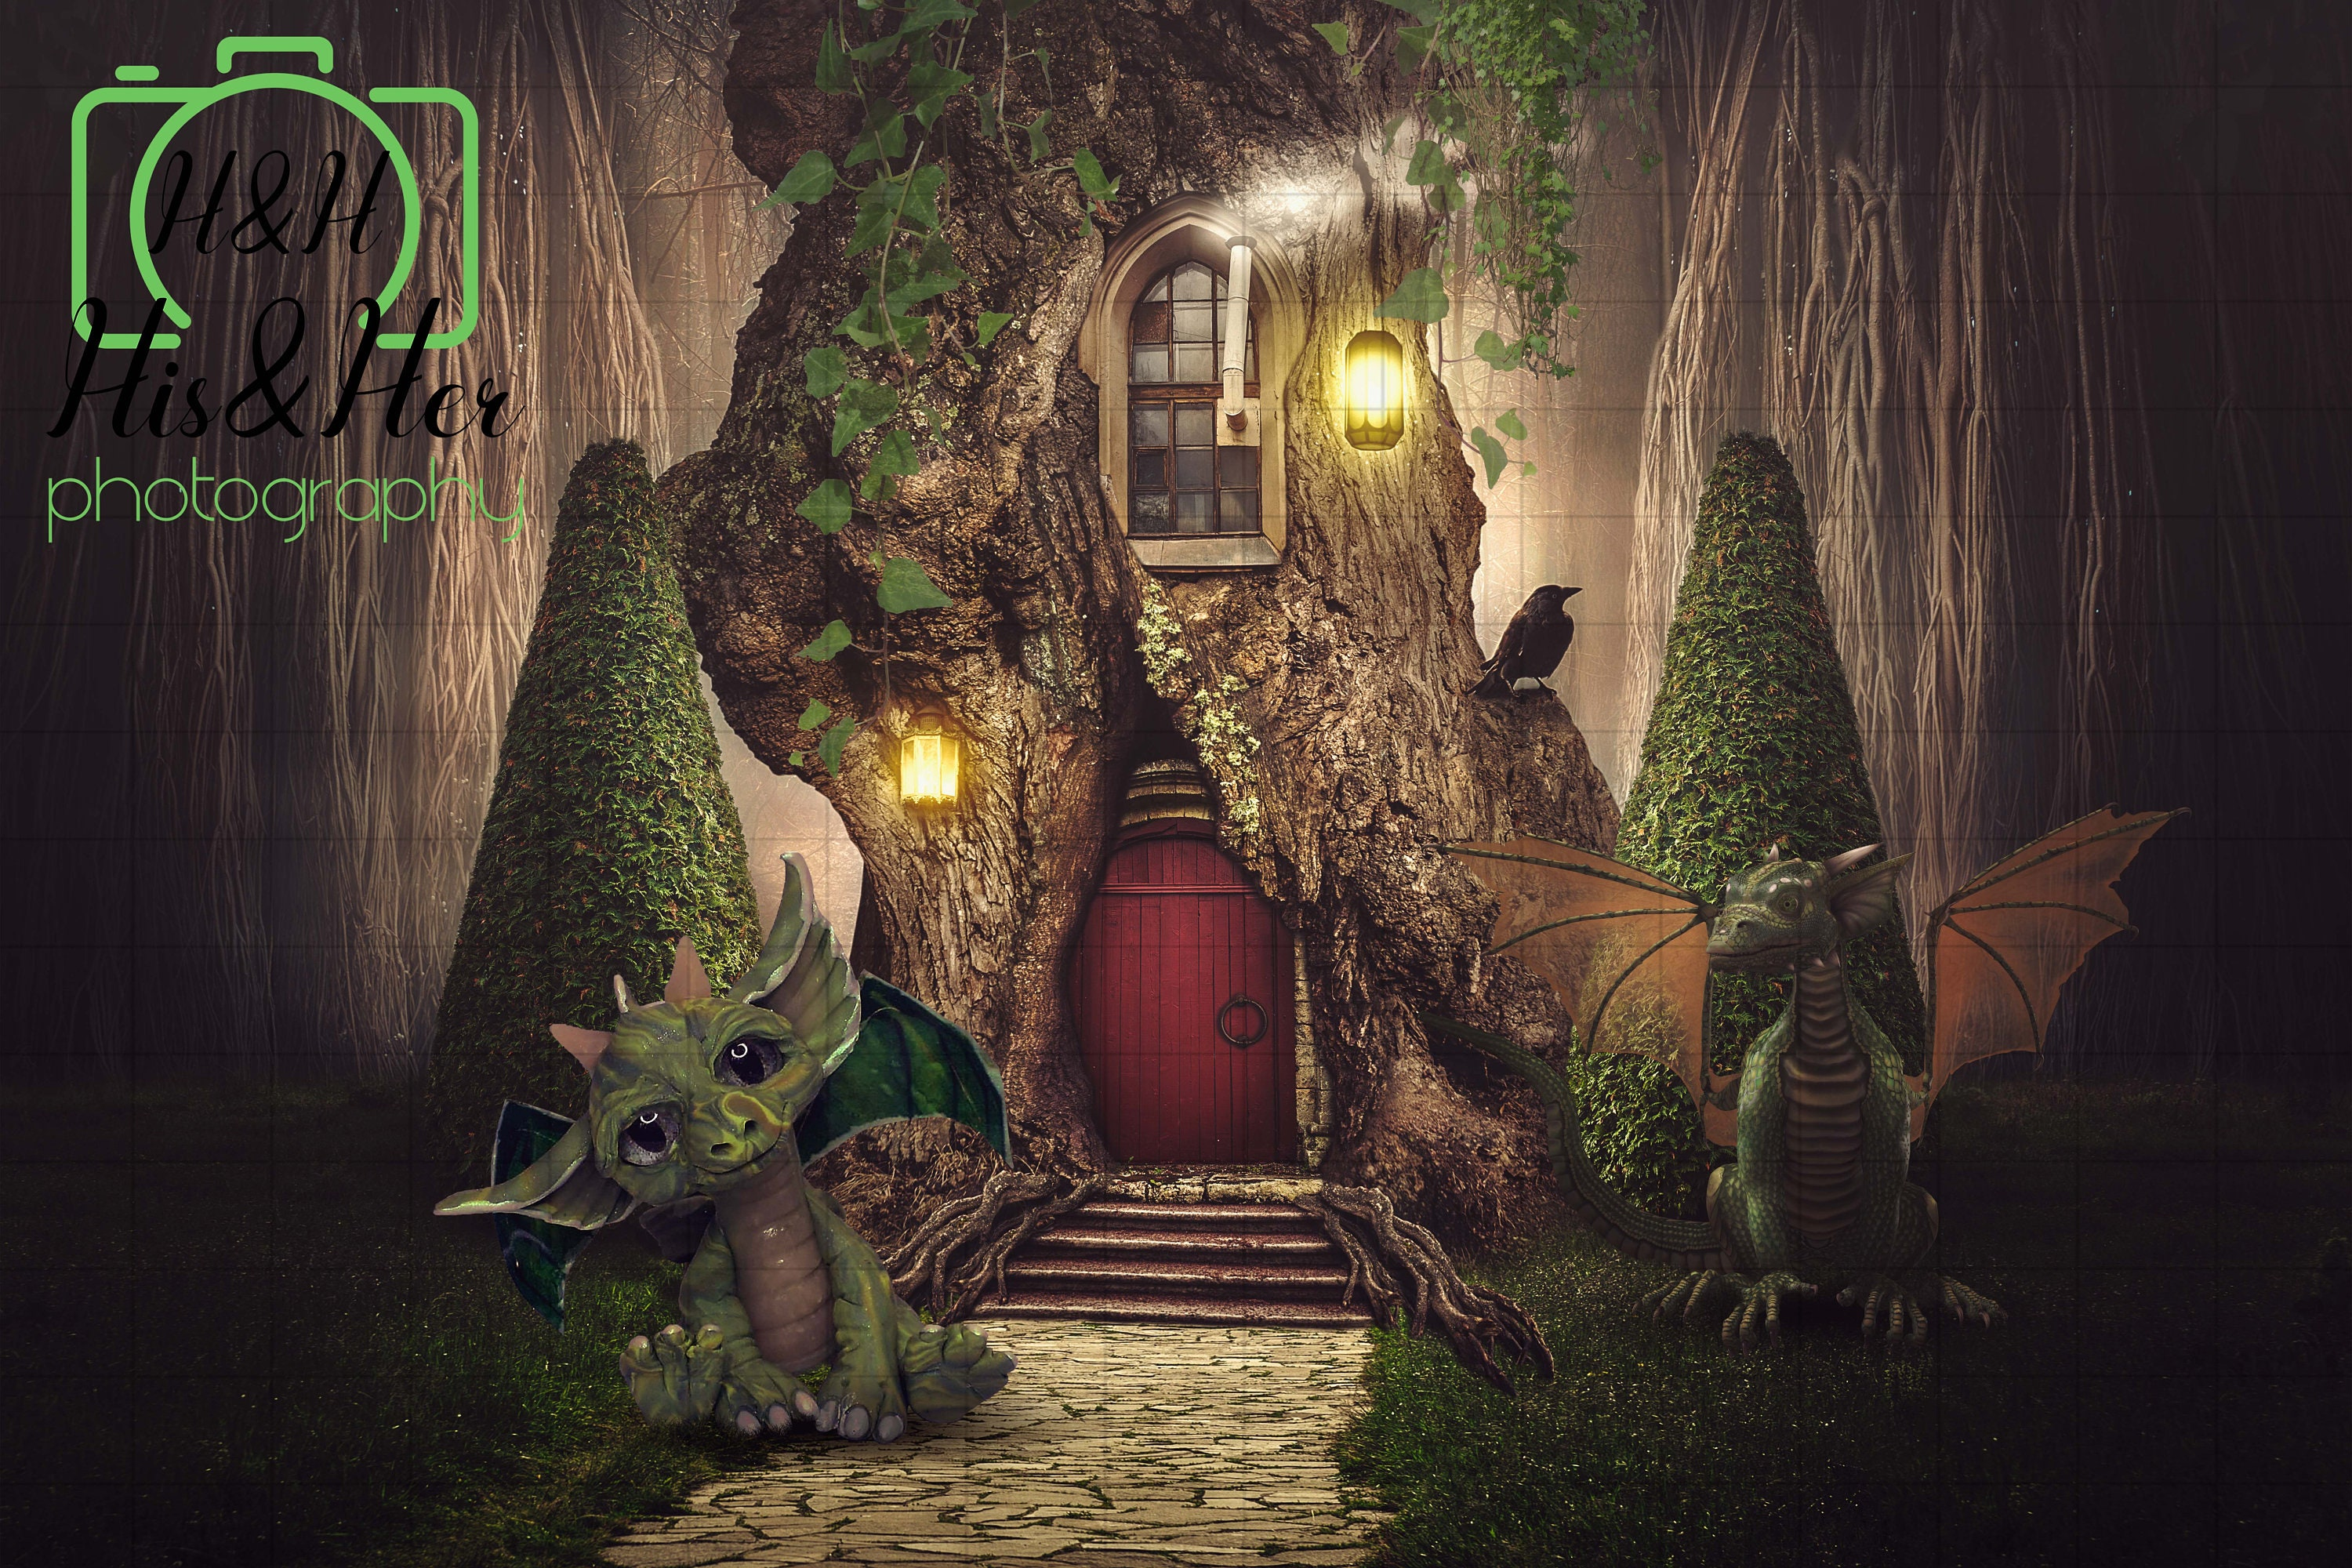 Baby Dragon Forest, Digital Background, Digital Backdrop, Digital Download,  Photoshop Background, Add Your Own Subject